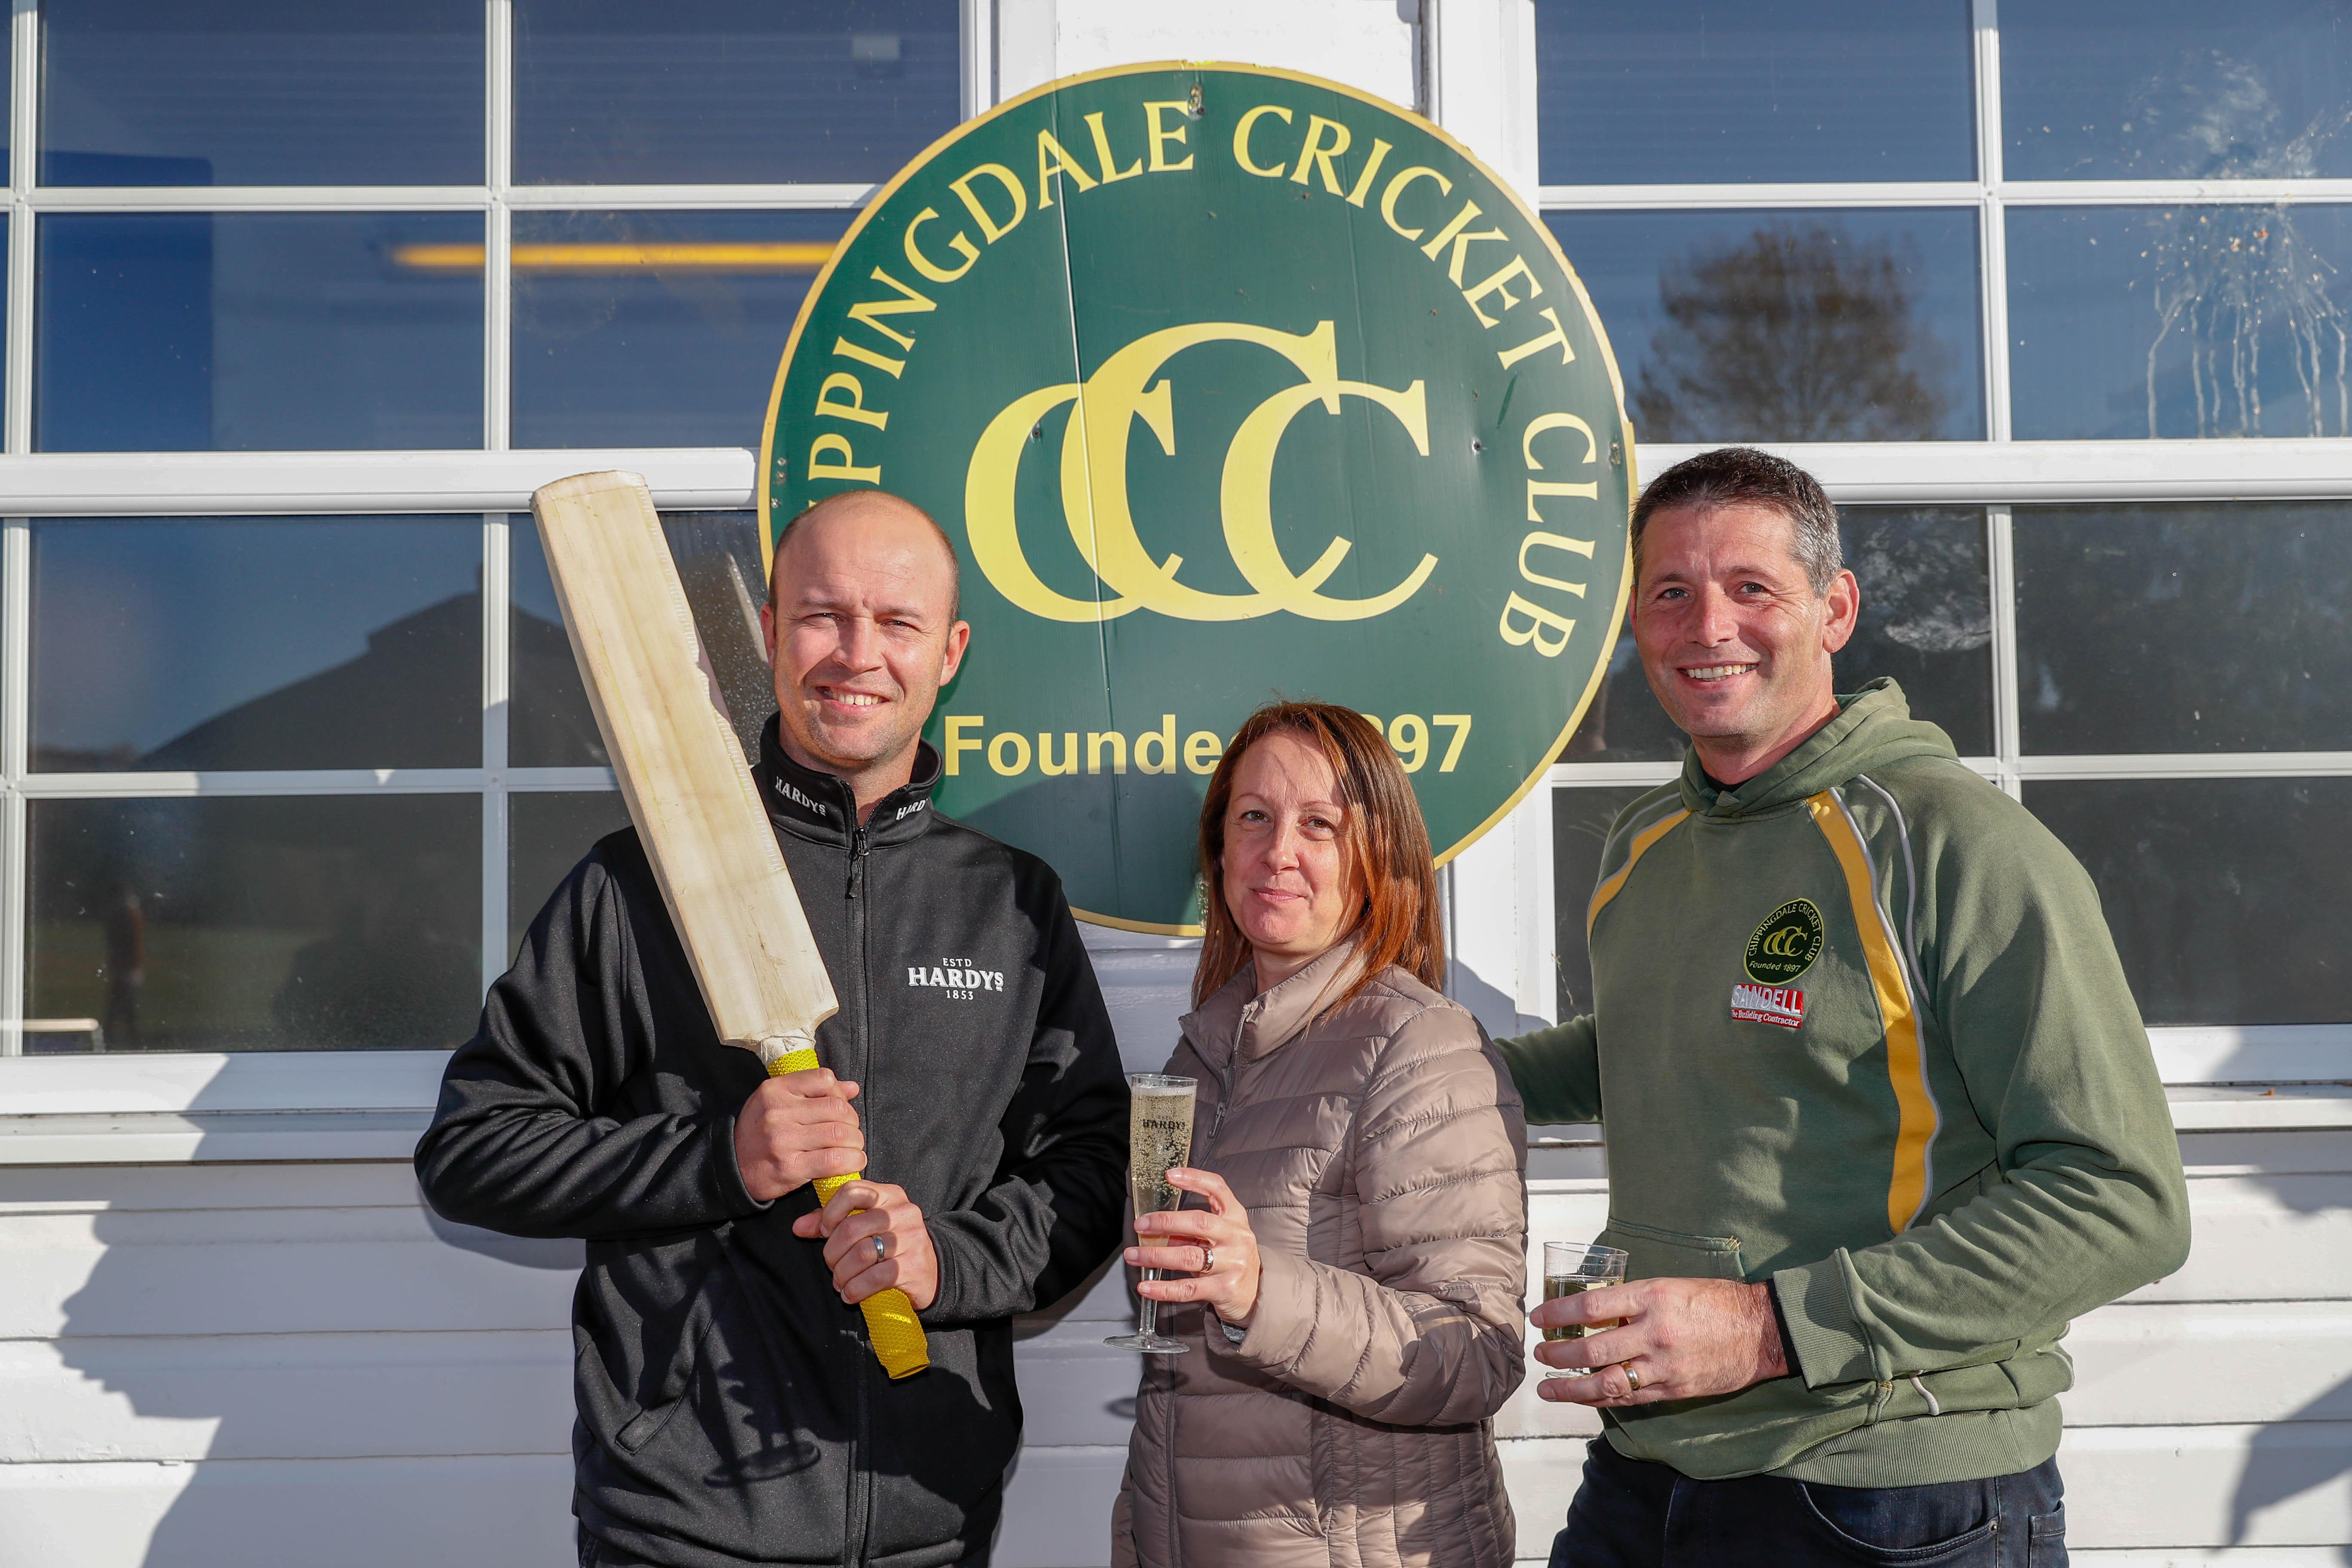 Jonathan Trott was speaking while celebrating Matt and Julie Bourne being crowned Hardys Heartbeat of the Club 2018